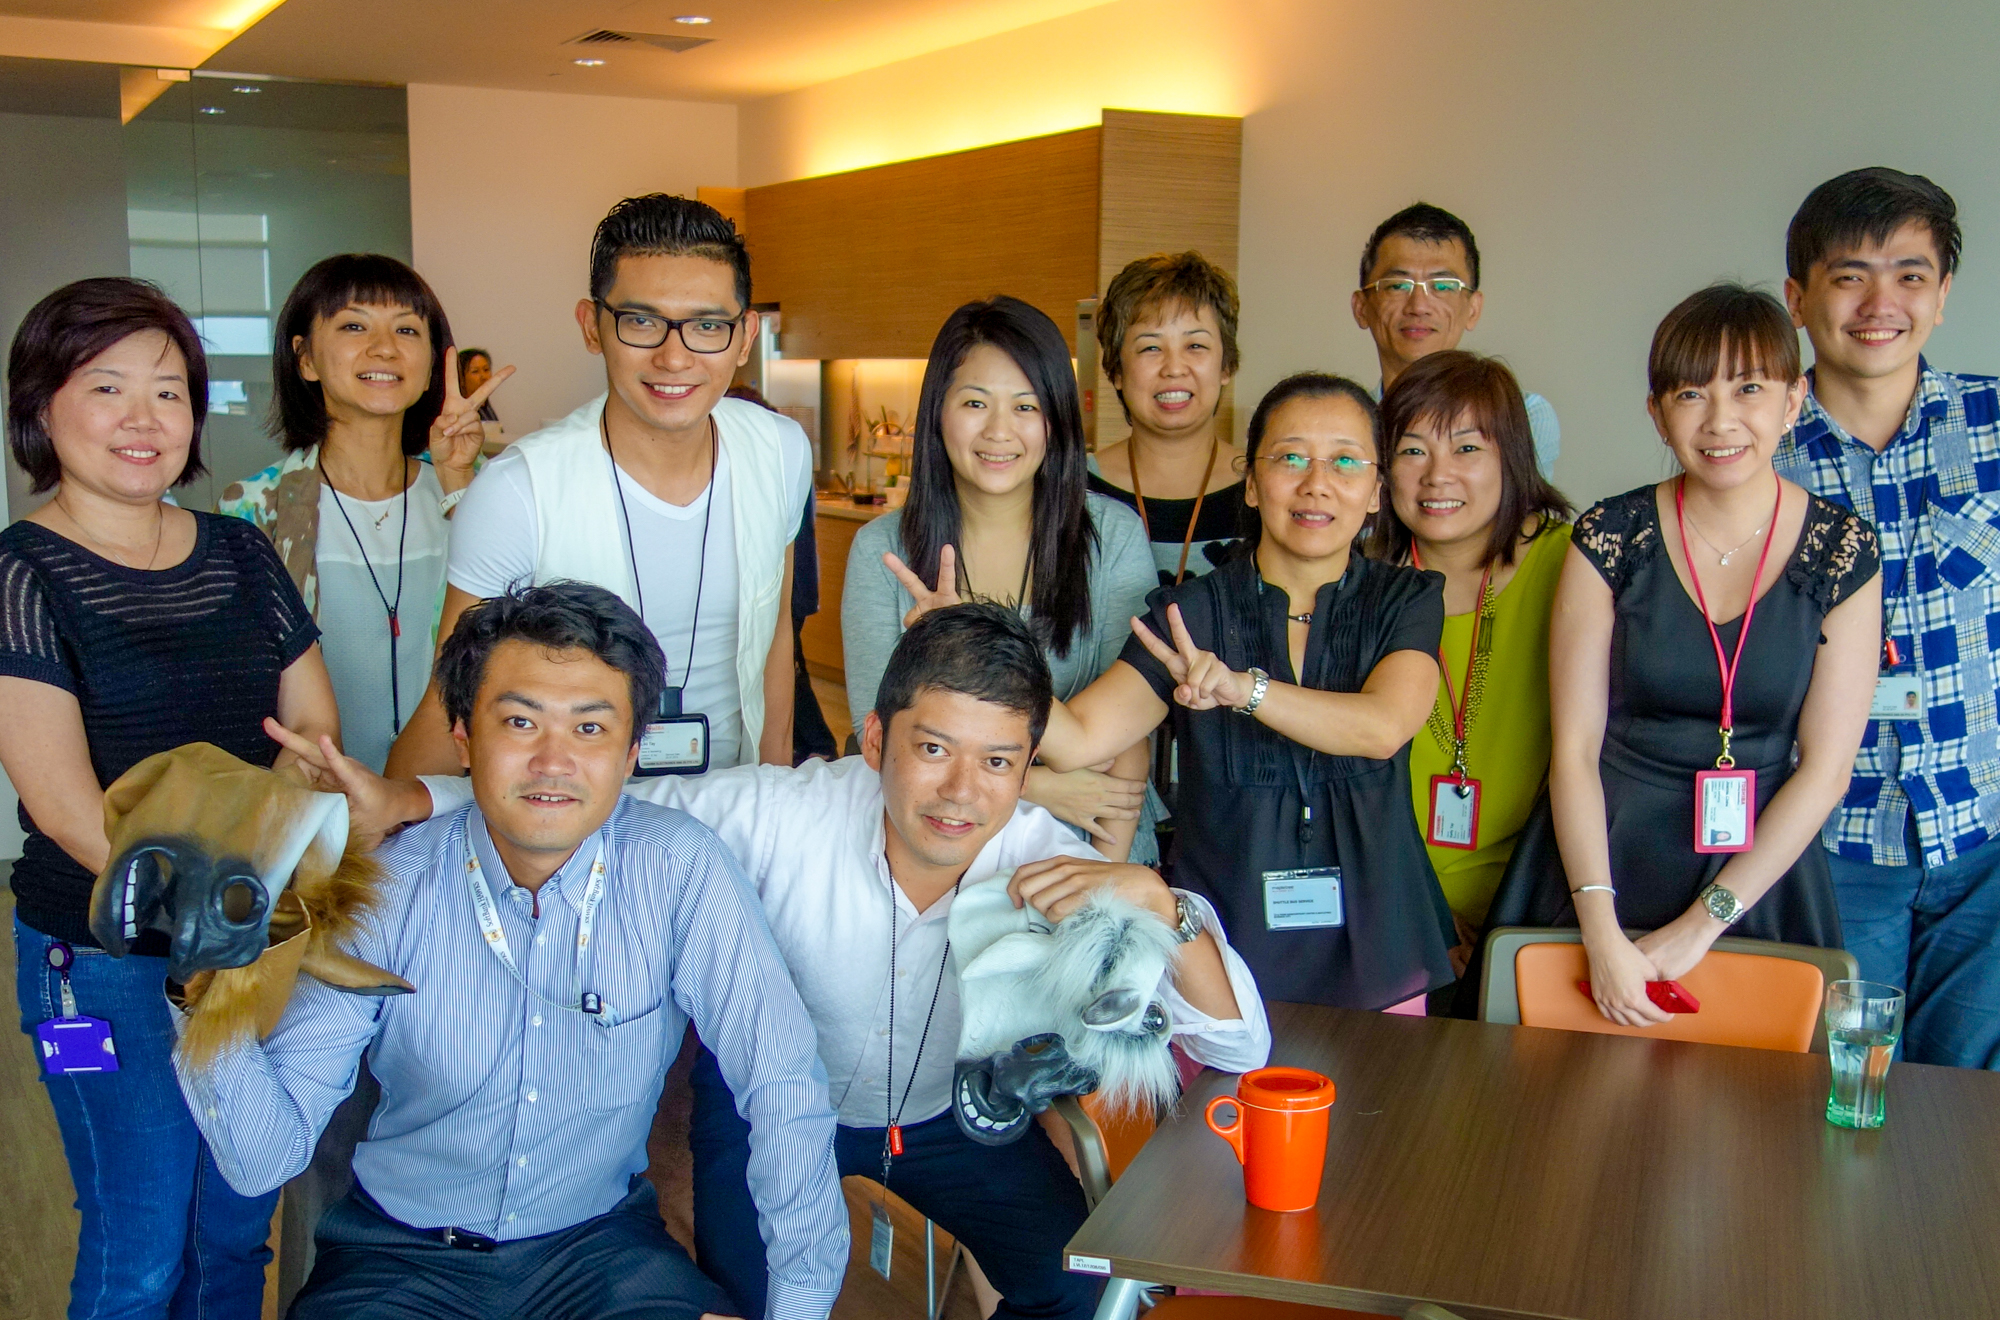 Mr. Katayama (second from the left of the front row) with colleagues from Singapore in 2014.